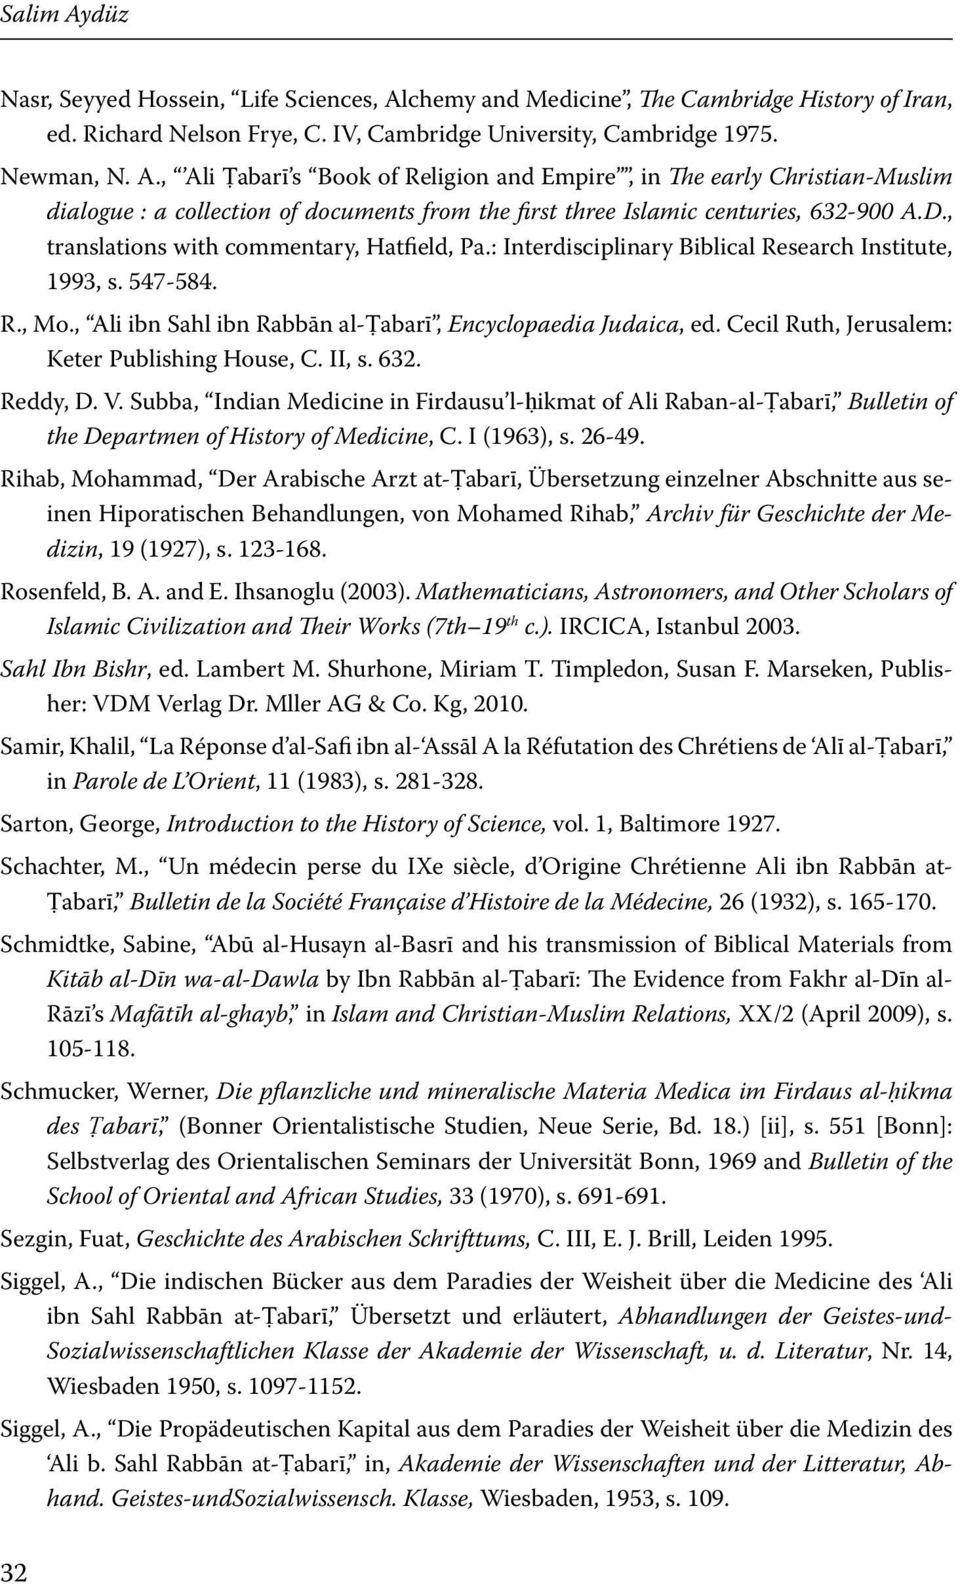 Cecil Ruth, Jerusalem: Keter Publishing House, C. II, s. 632. Reddy, D. V. Subba, Indian Medicine in Firdausu l-ḥikmat of Ali Raban-al-Ṭabarī, Bulletin of the Departmen of History of Medicine, C.